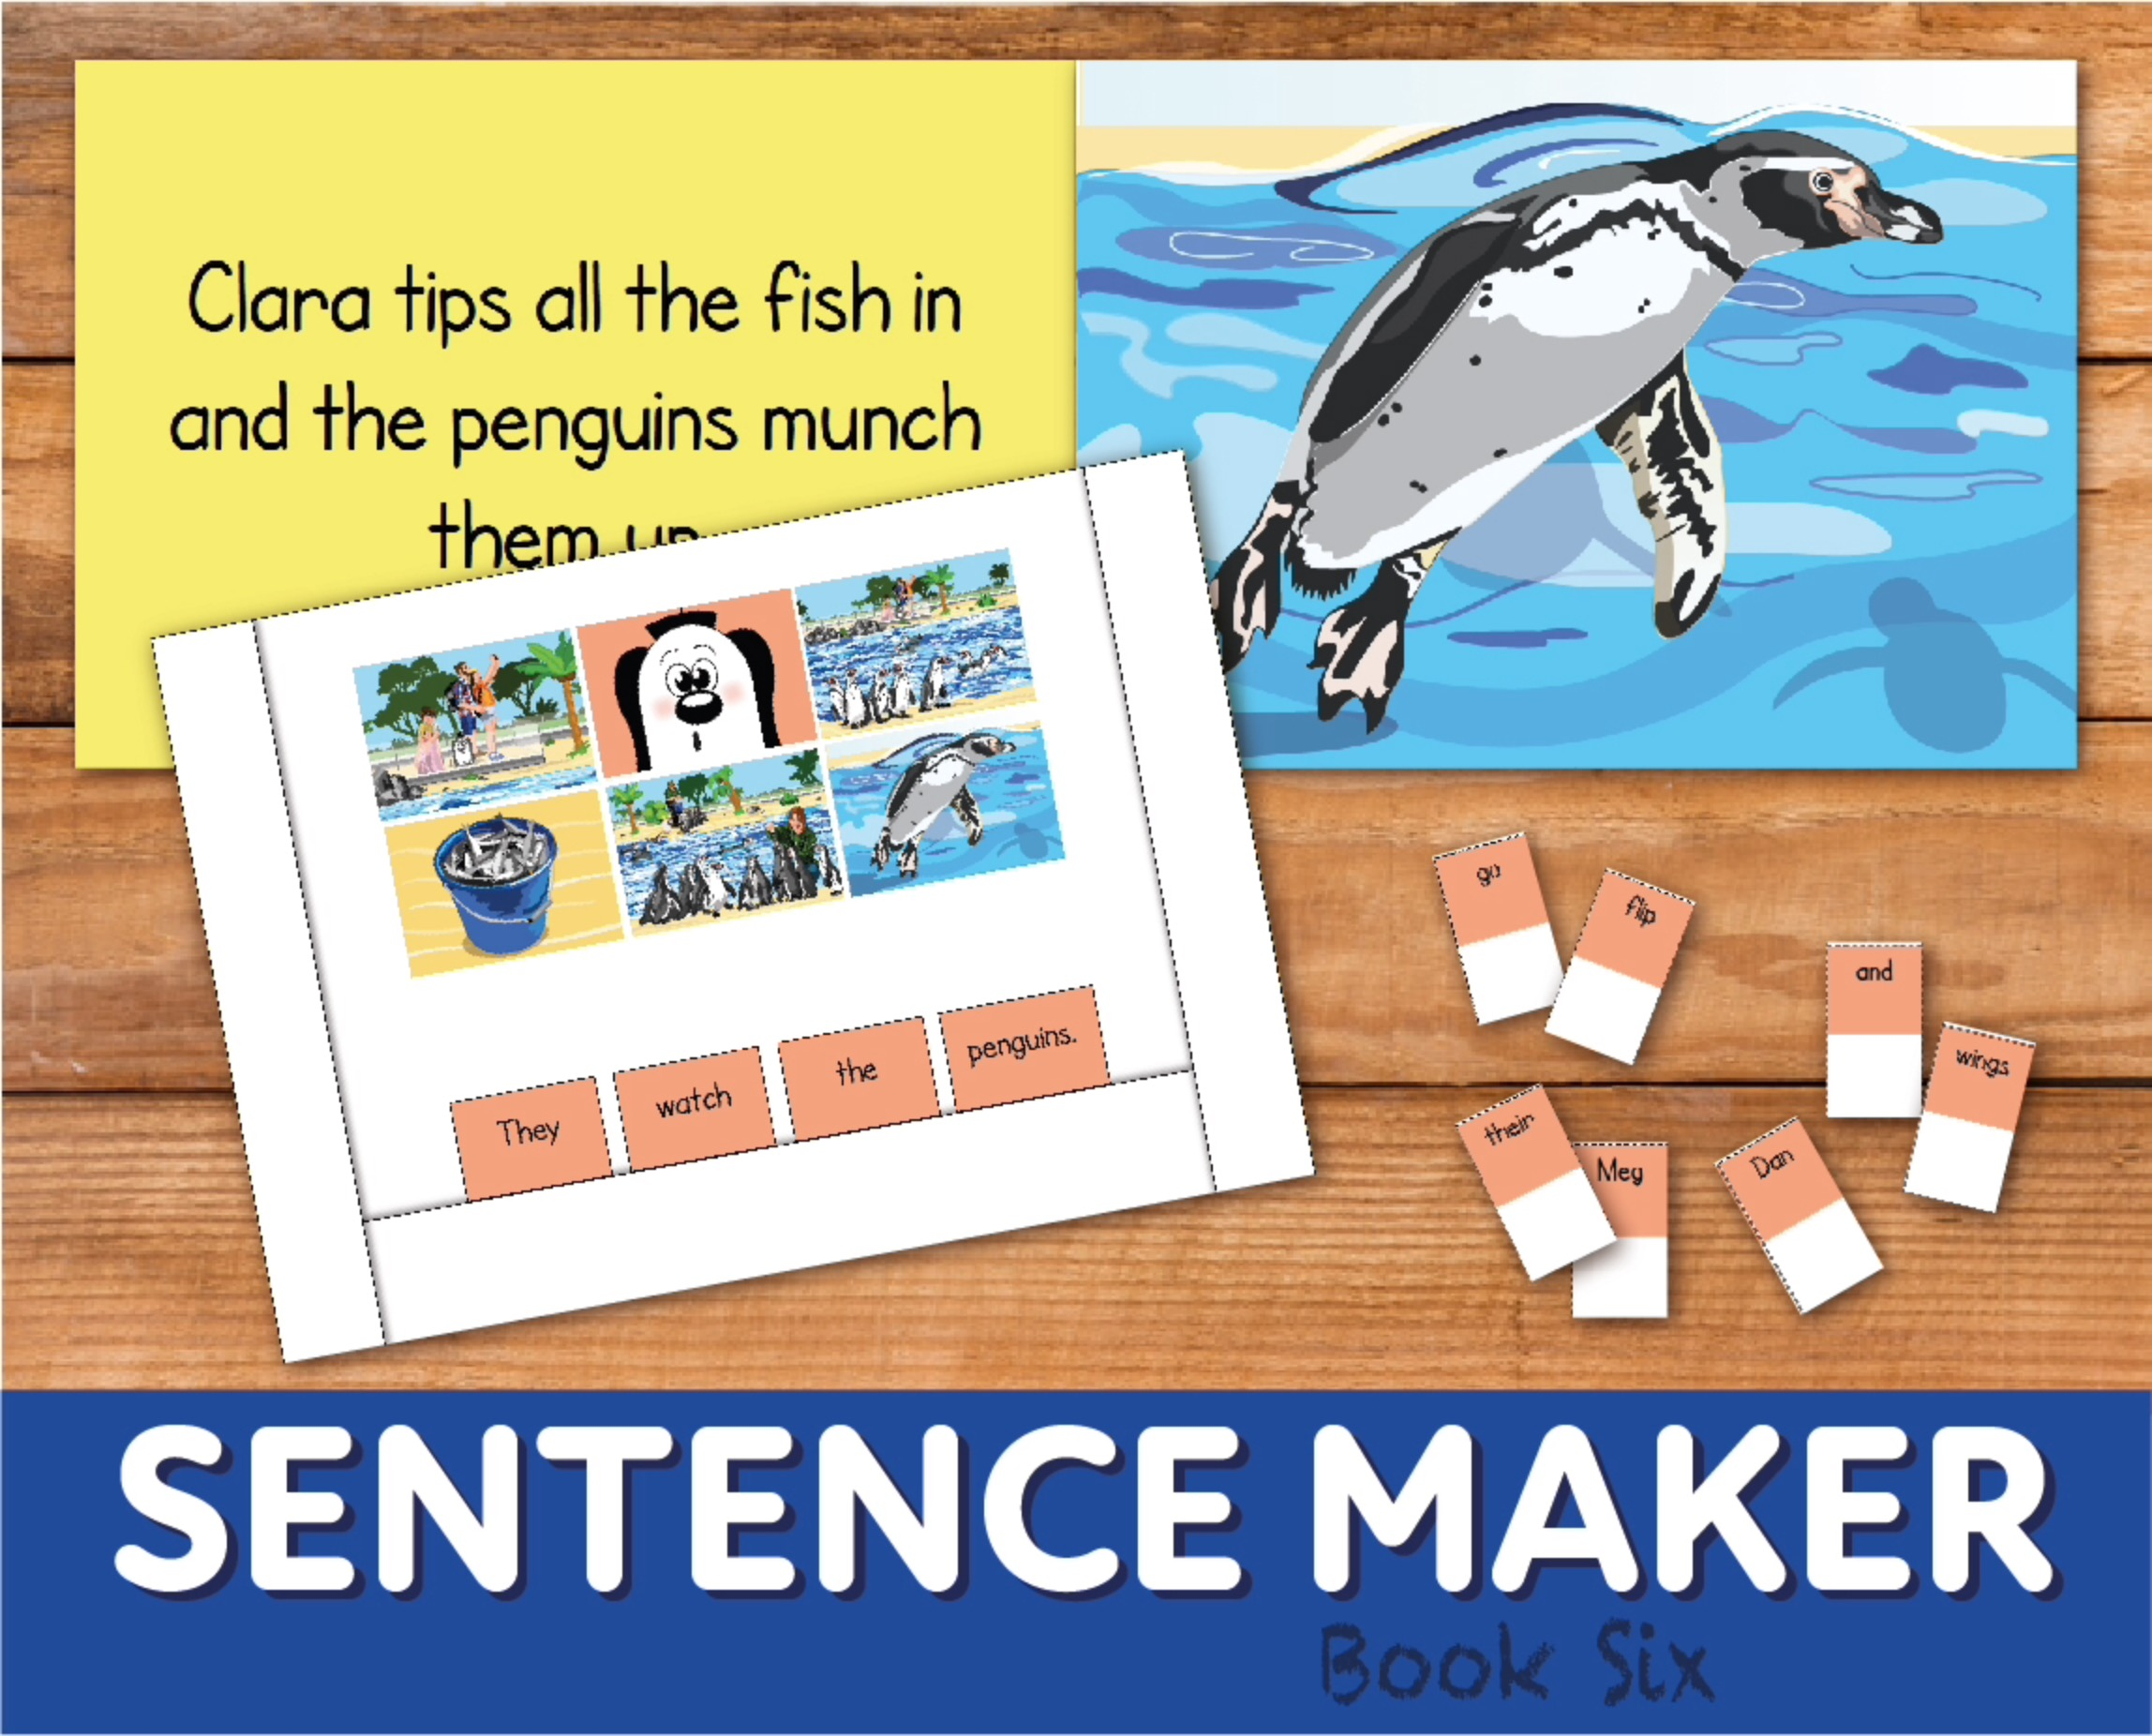 Make Sentences With The Sentence Maker: Book 6